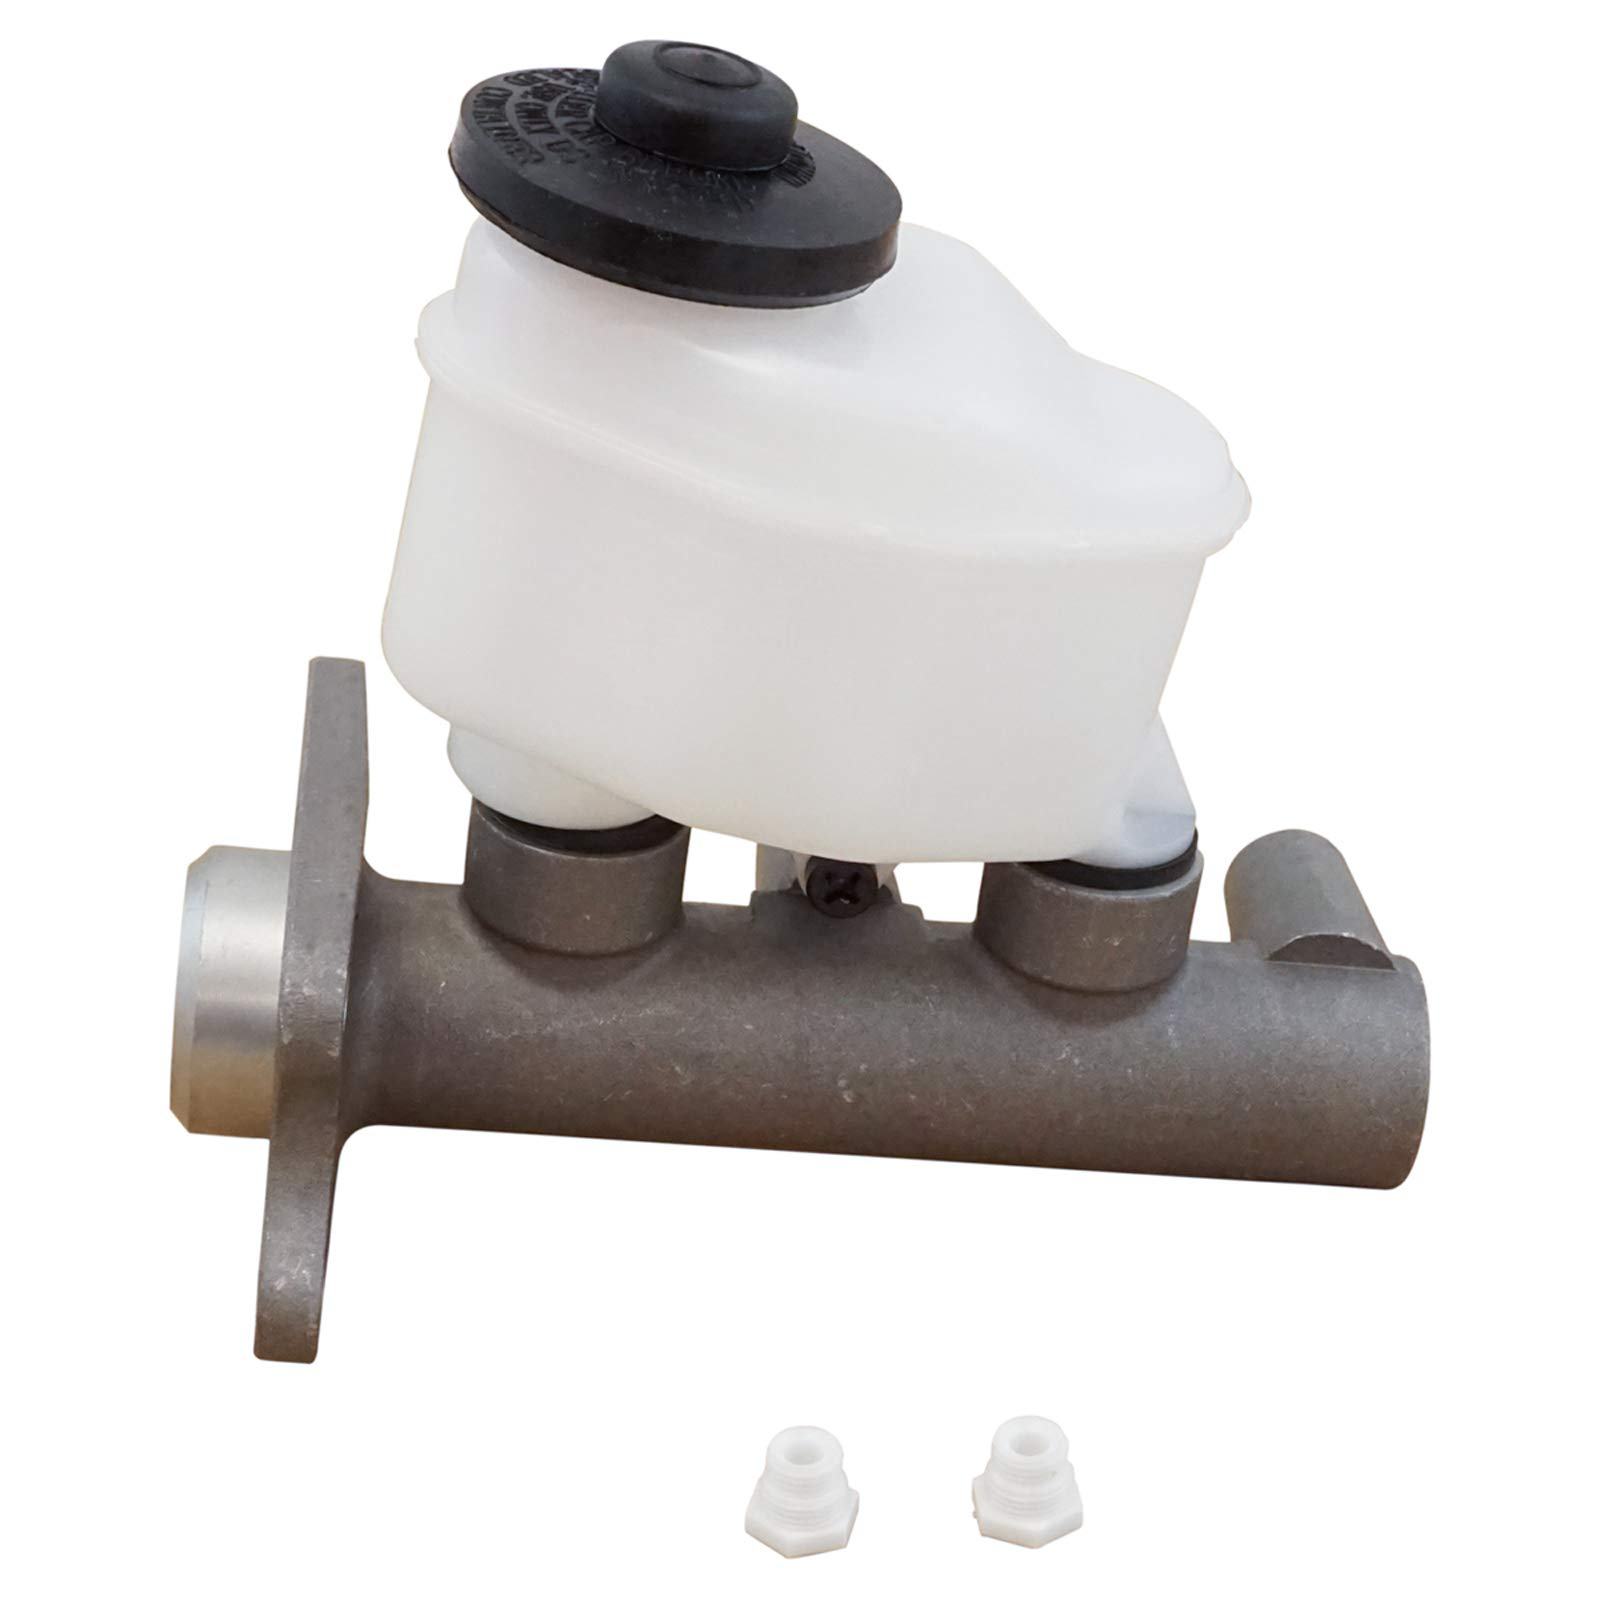 1A Auto Brake Master Cylinder with Reservoir & Level Sensor for 95-00 Toyota Tacoma New by 1A Auto